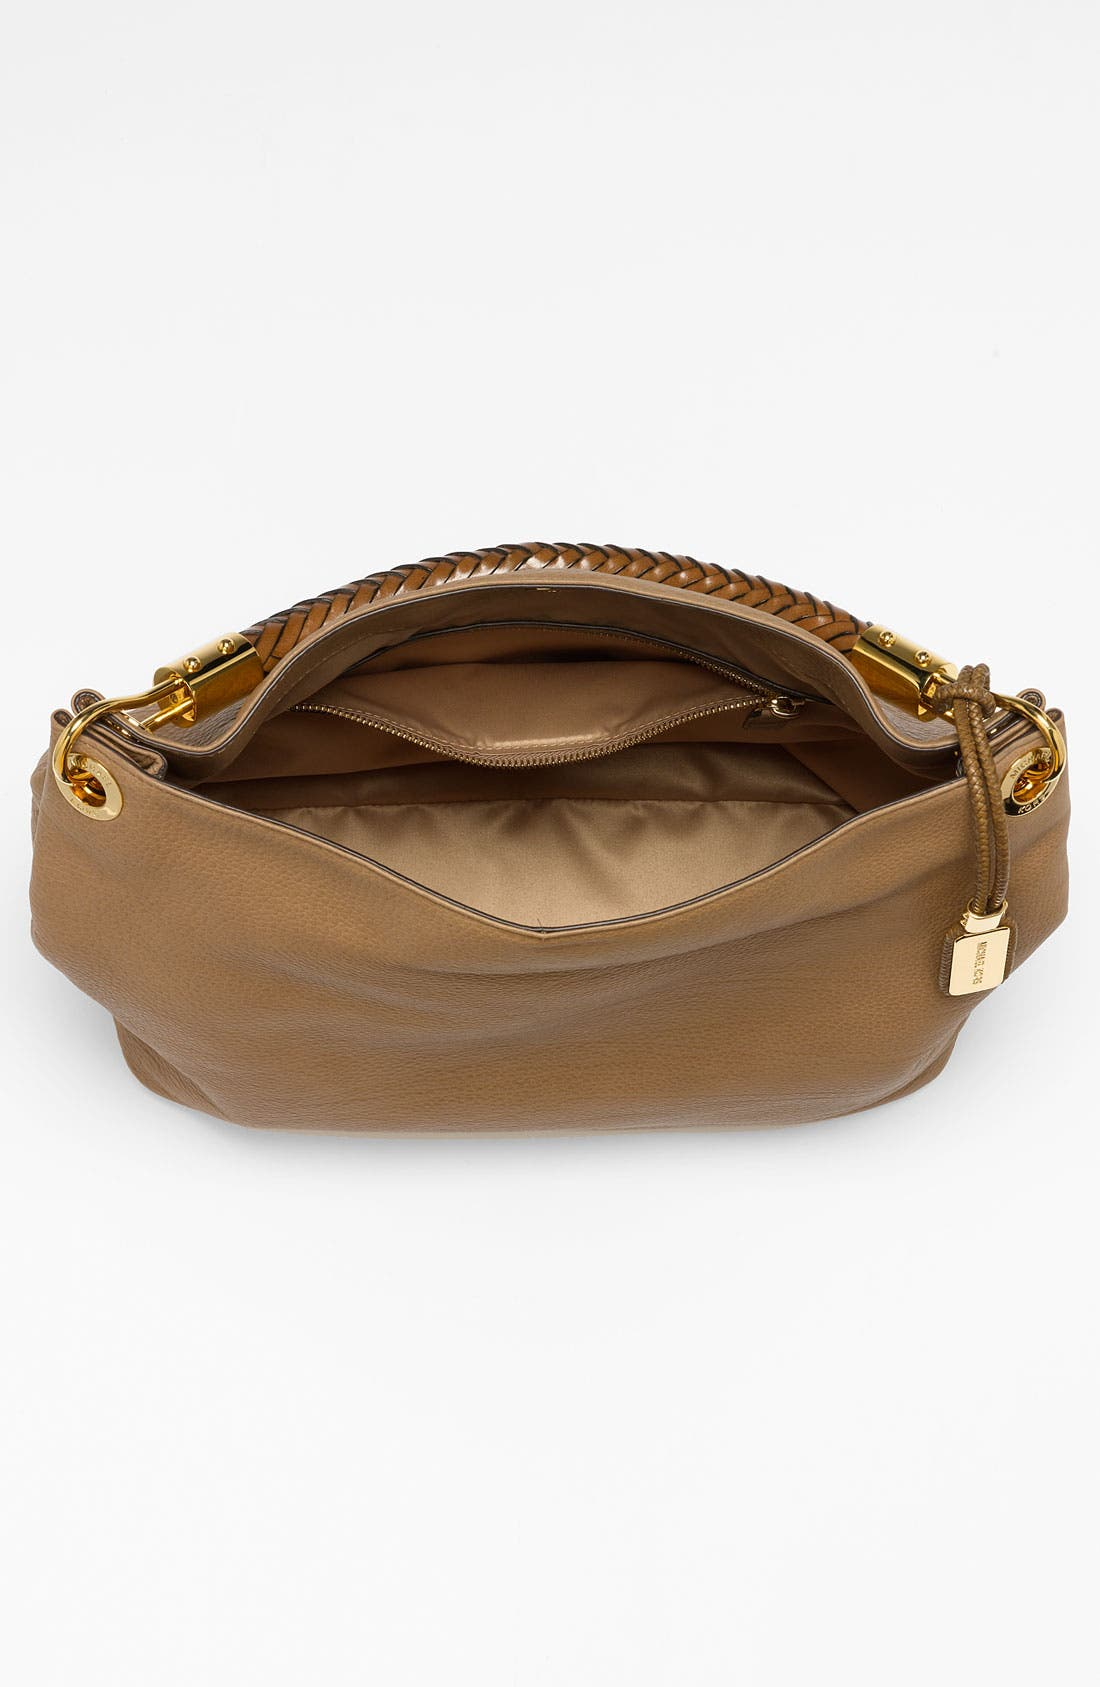 Alternate Image 3  - Michael Kors 'Skorpios - Large' Leather Hobo